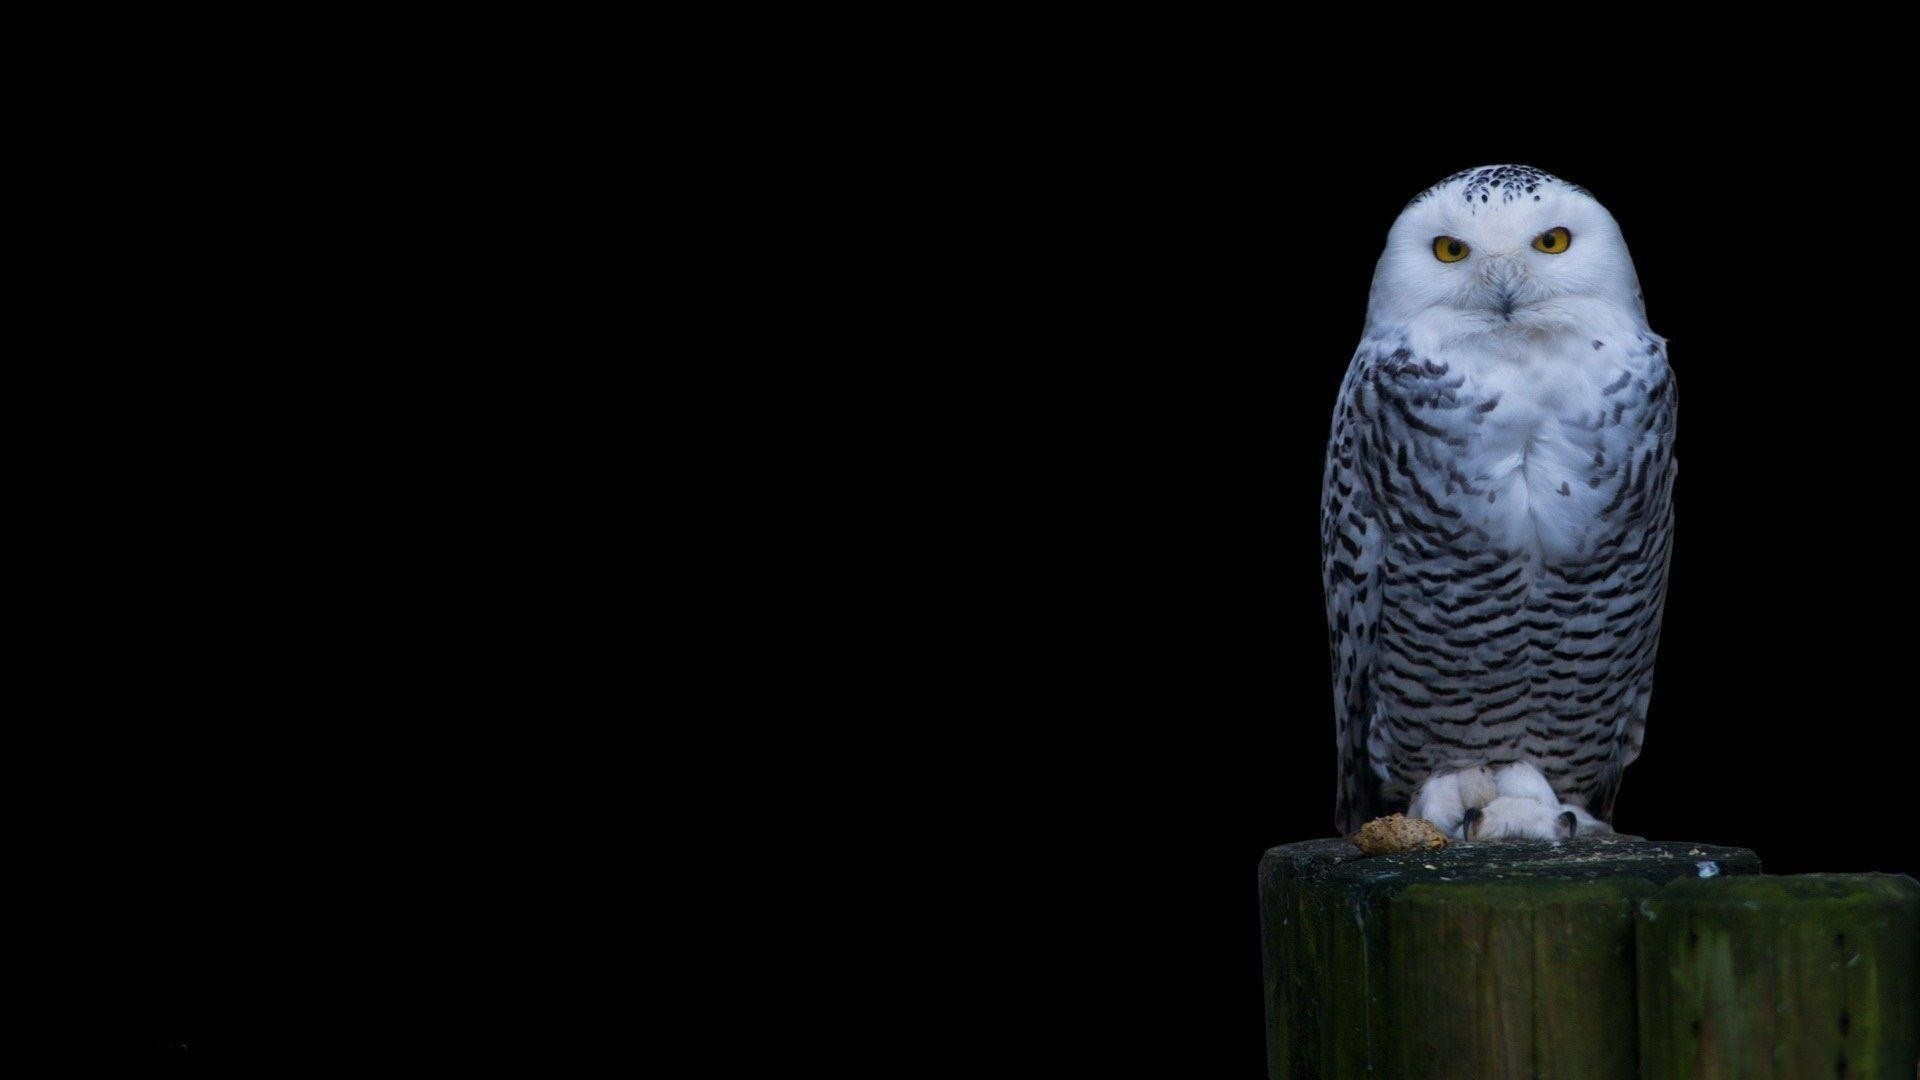 1920x1080 Snowy Owl Wallpaper Free Wallpapers Hd Desktop Backgrounds .